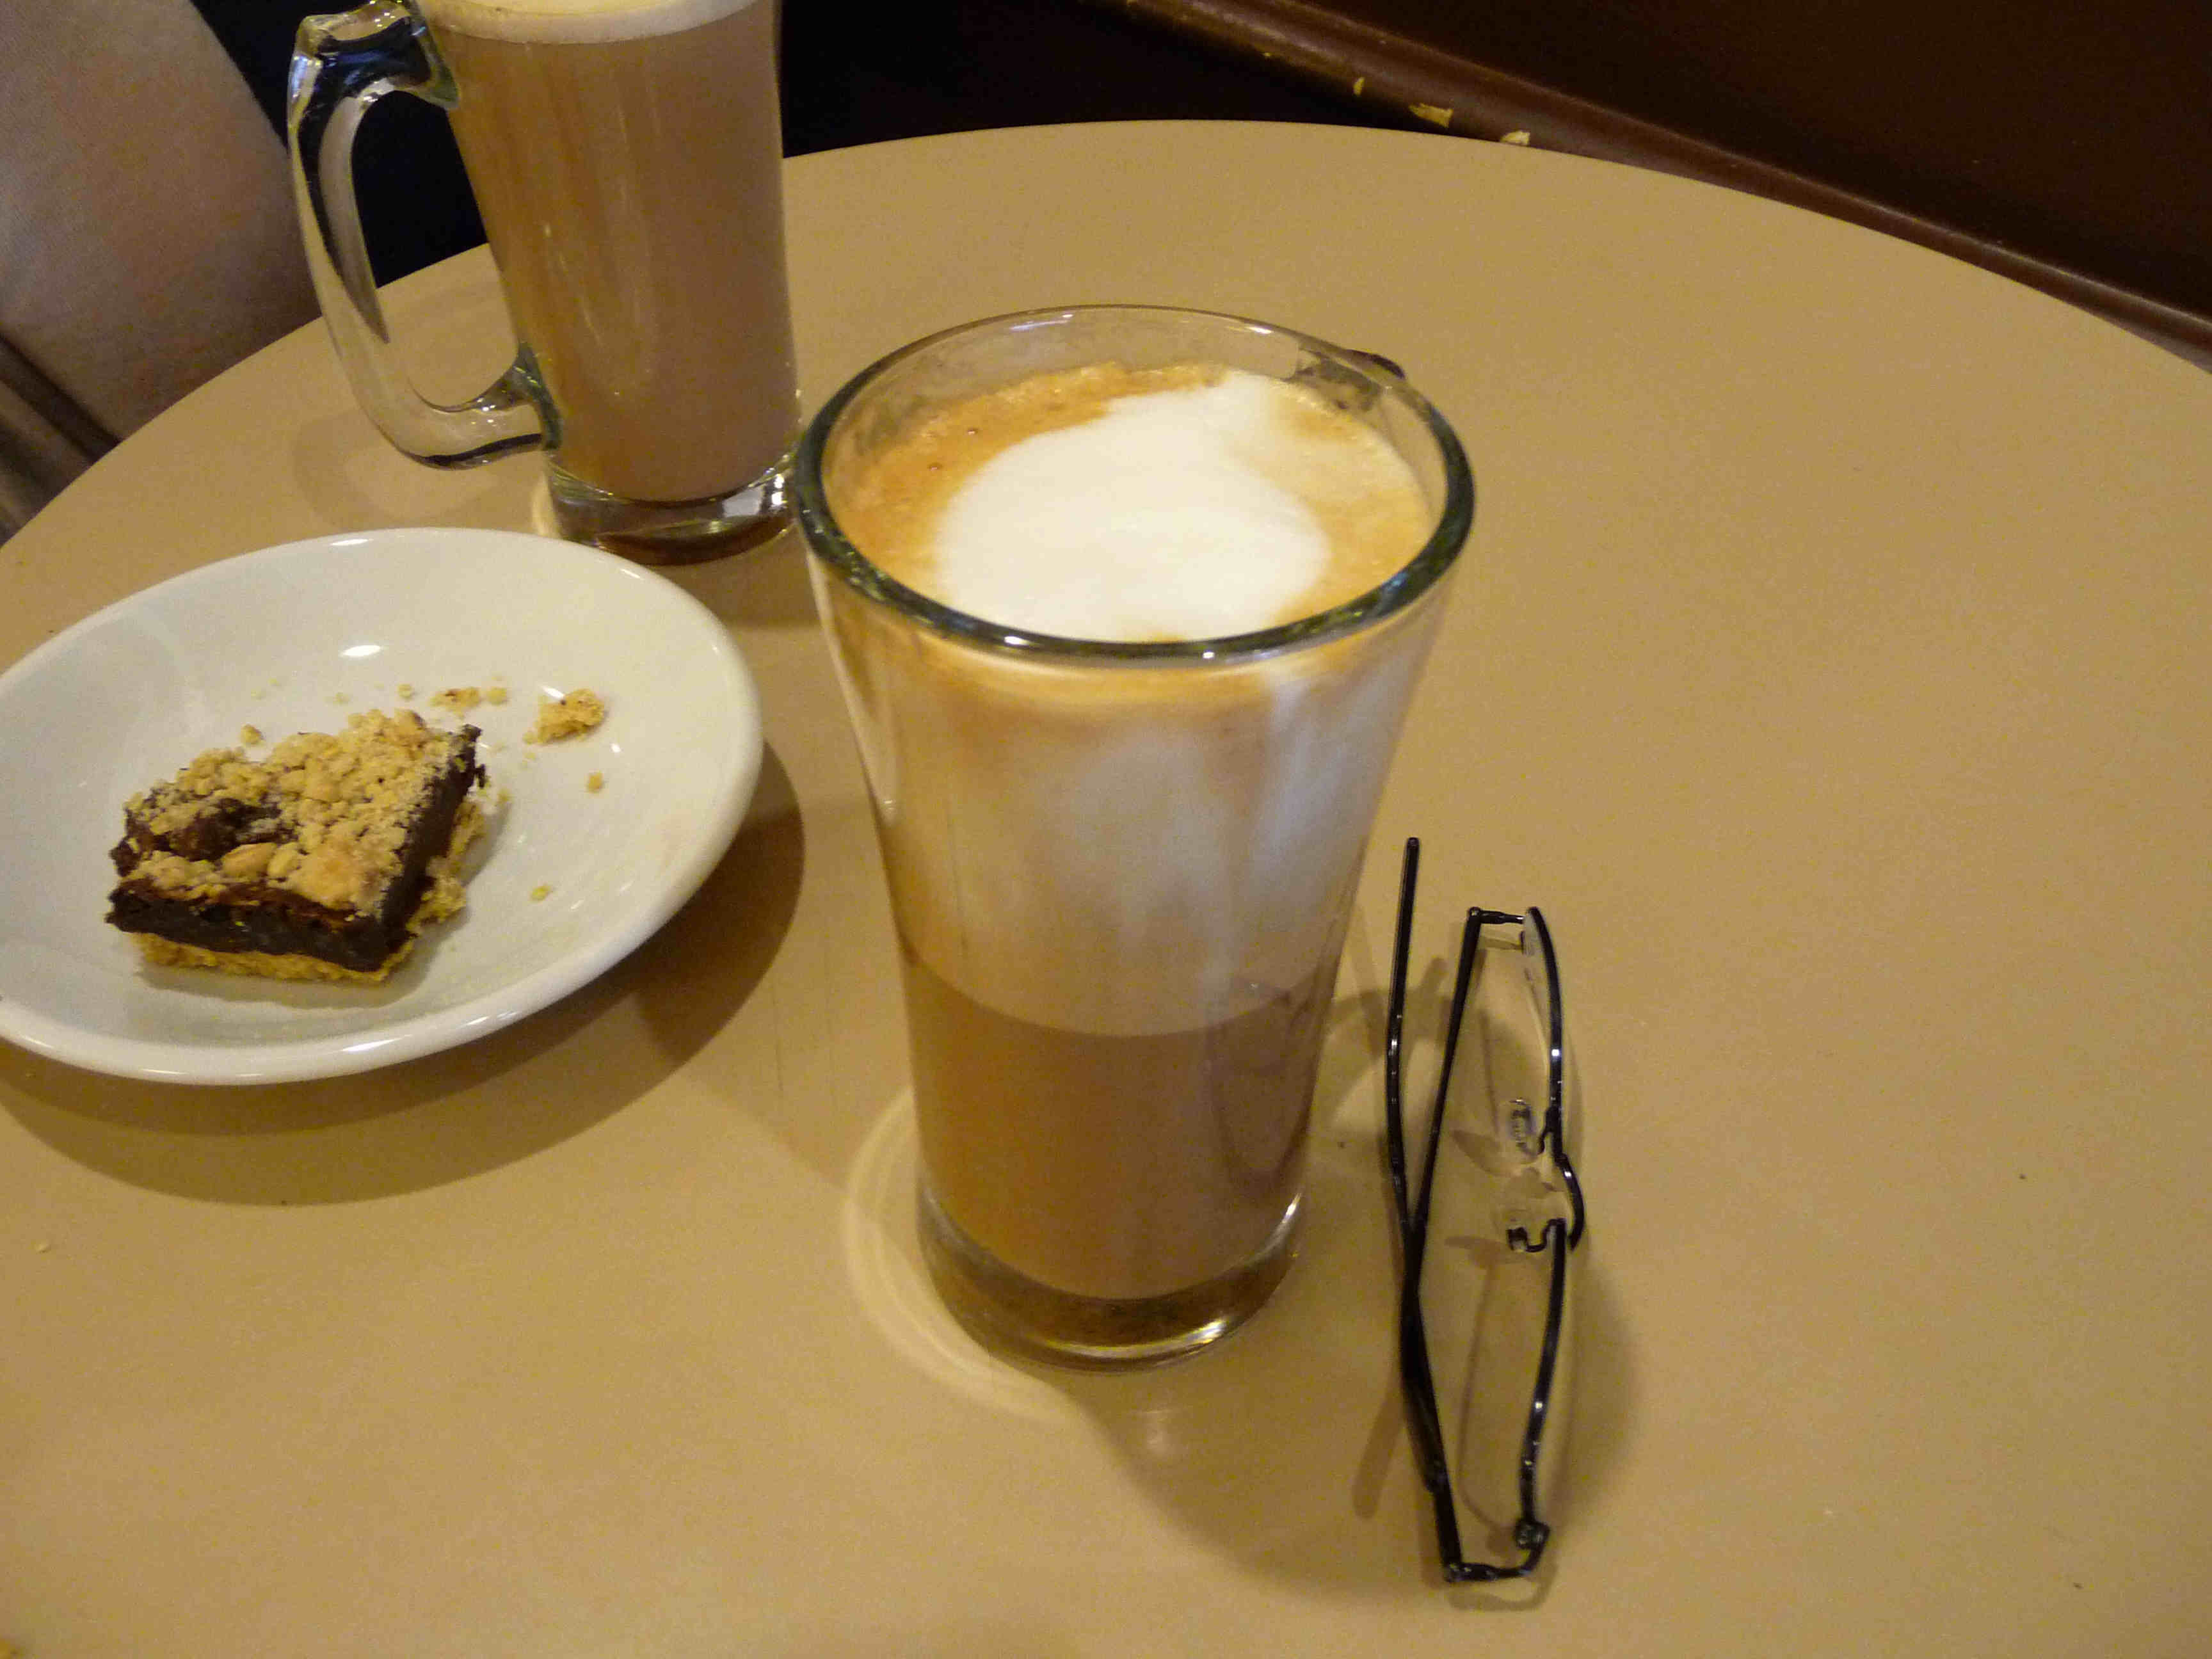 This glass produced a nice cross-section of a cappuccino, but was otherwise worthless.